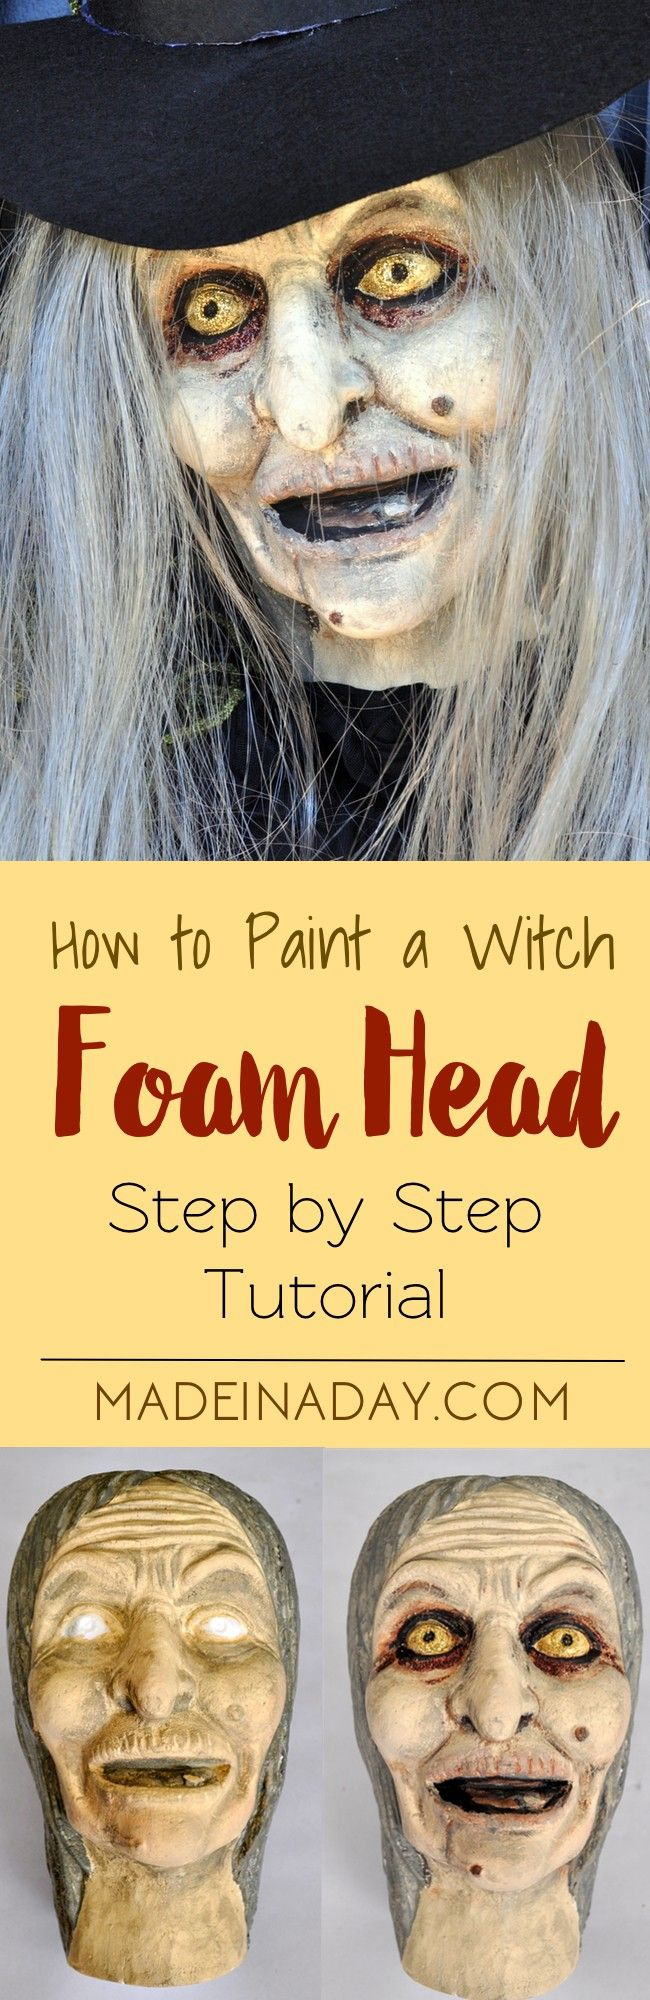 Wicked Witch Halloween Wreath Paint a foam witch head and add a grey wig and make it the centerpiece to a Halloween Wreath, paint a witch face, tutorial on madeinaday.com via @thelovelymrsp